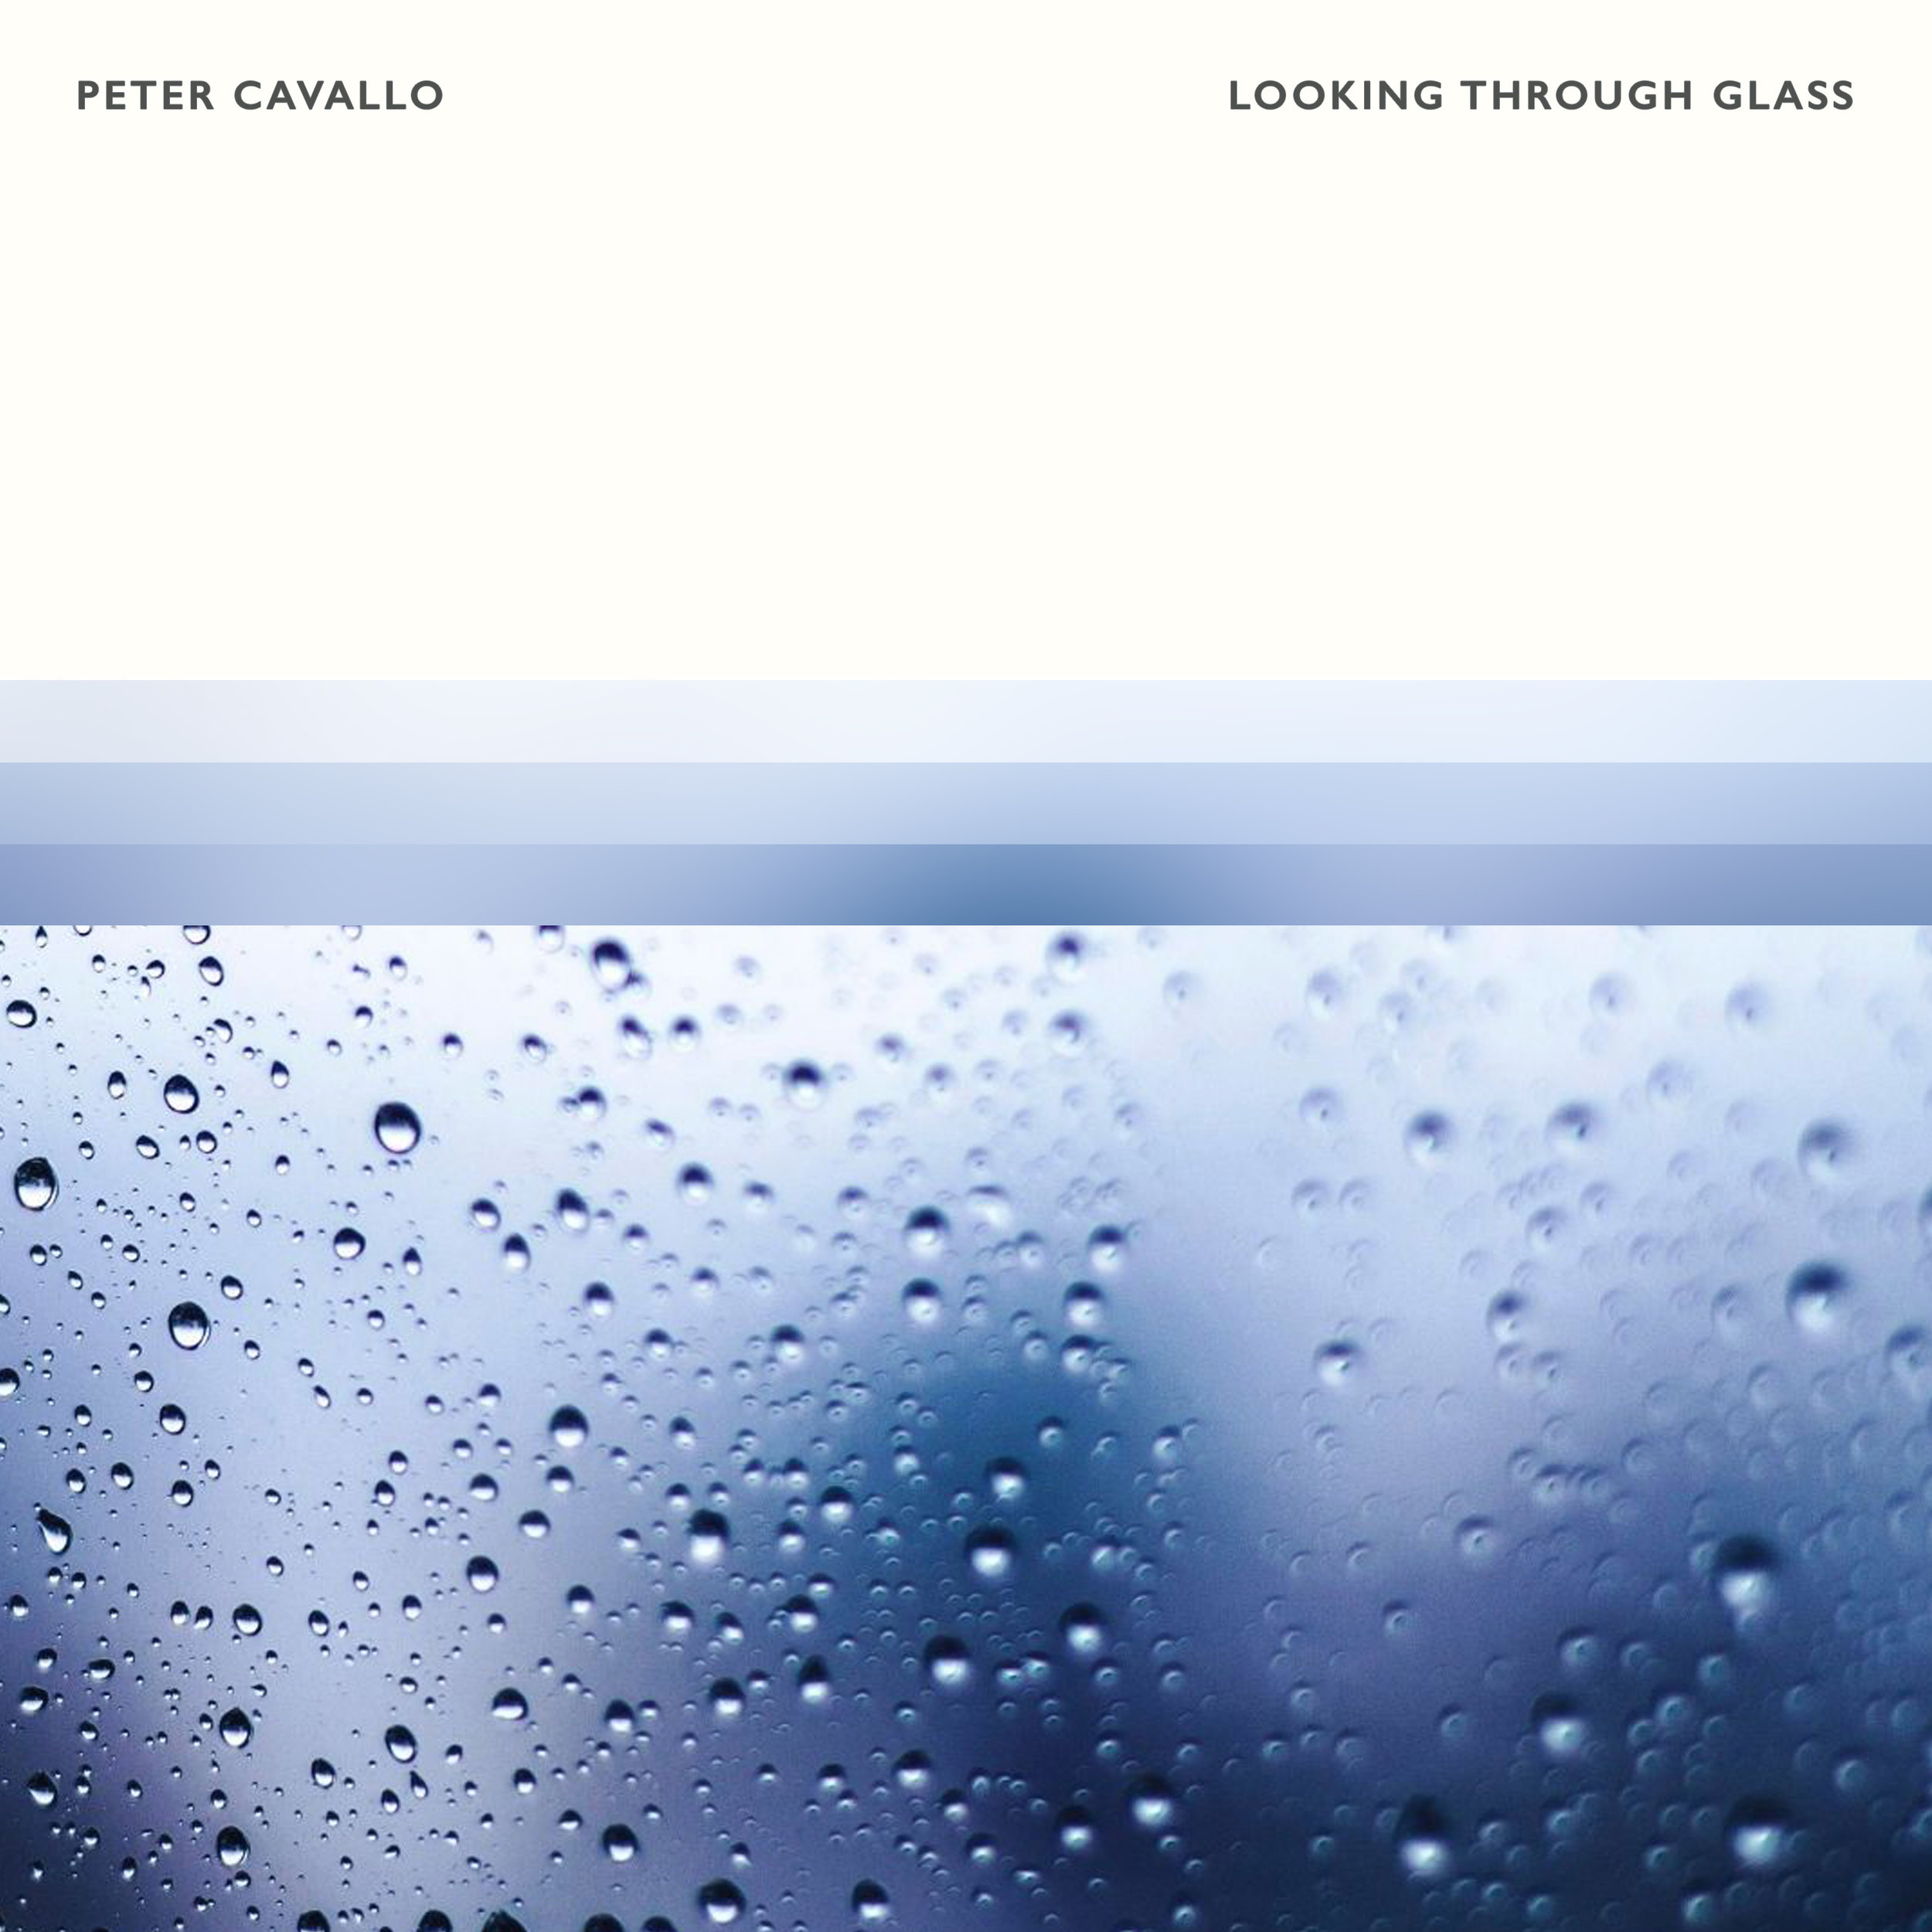 Peter Cavallo - Looking Through Glass